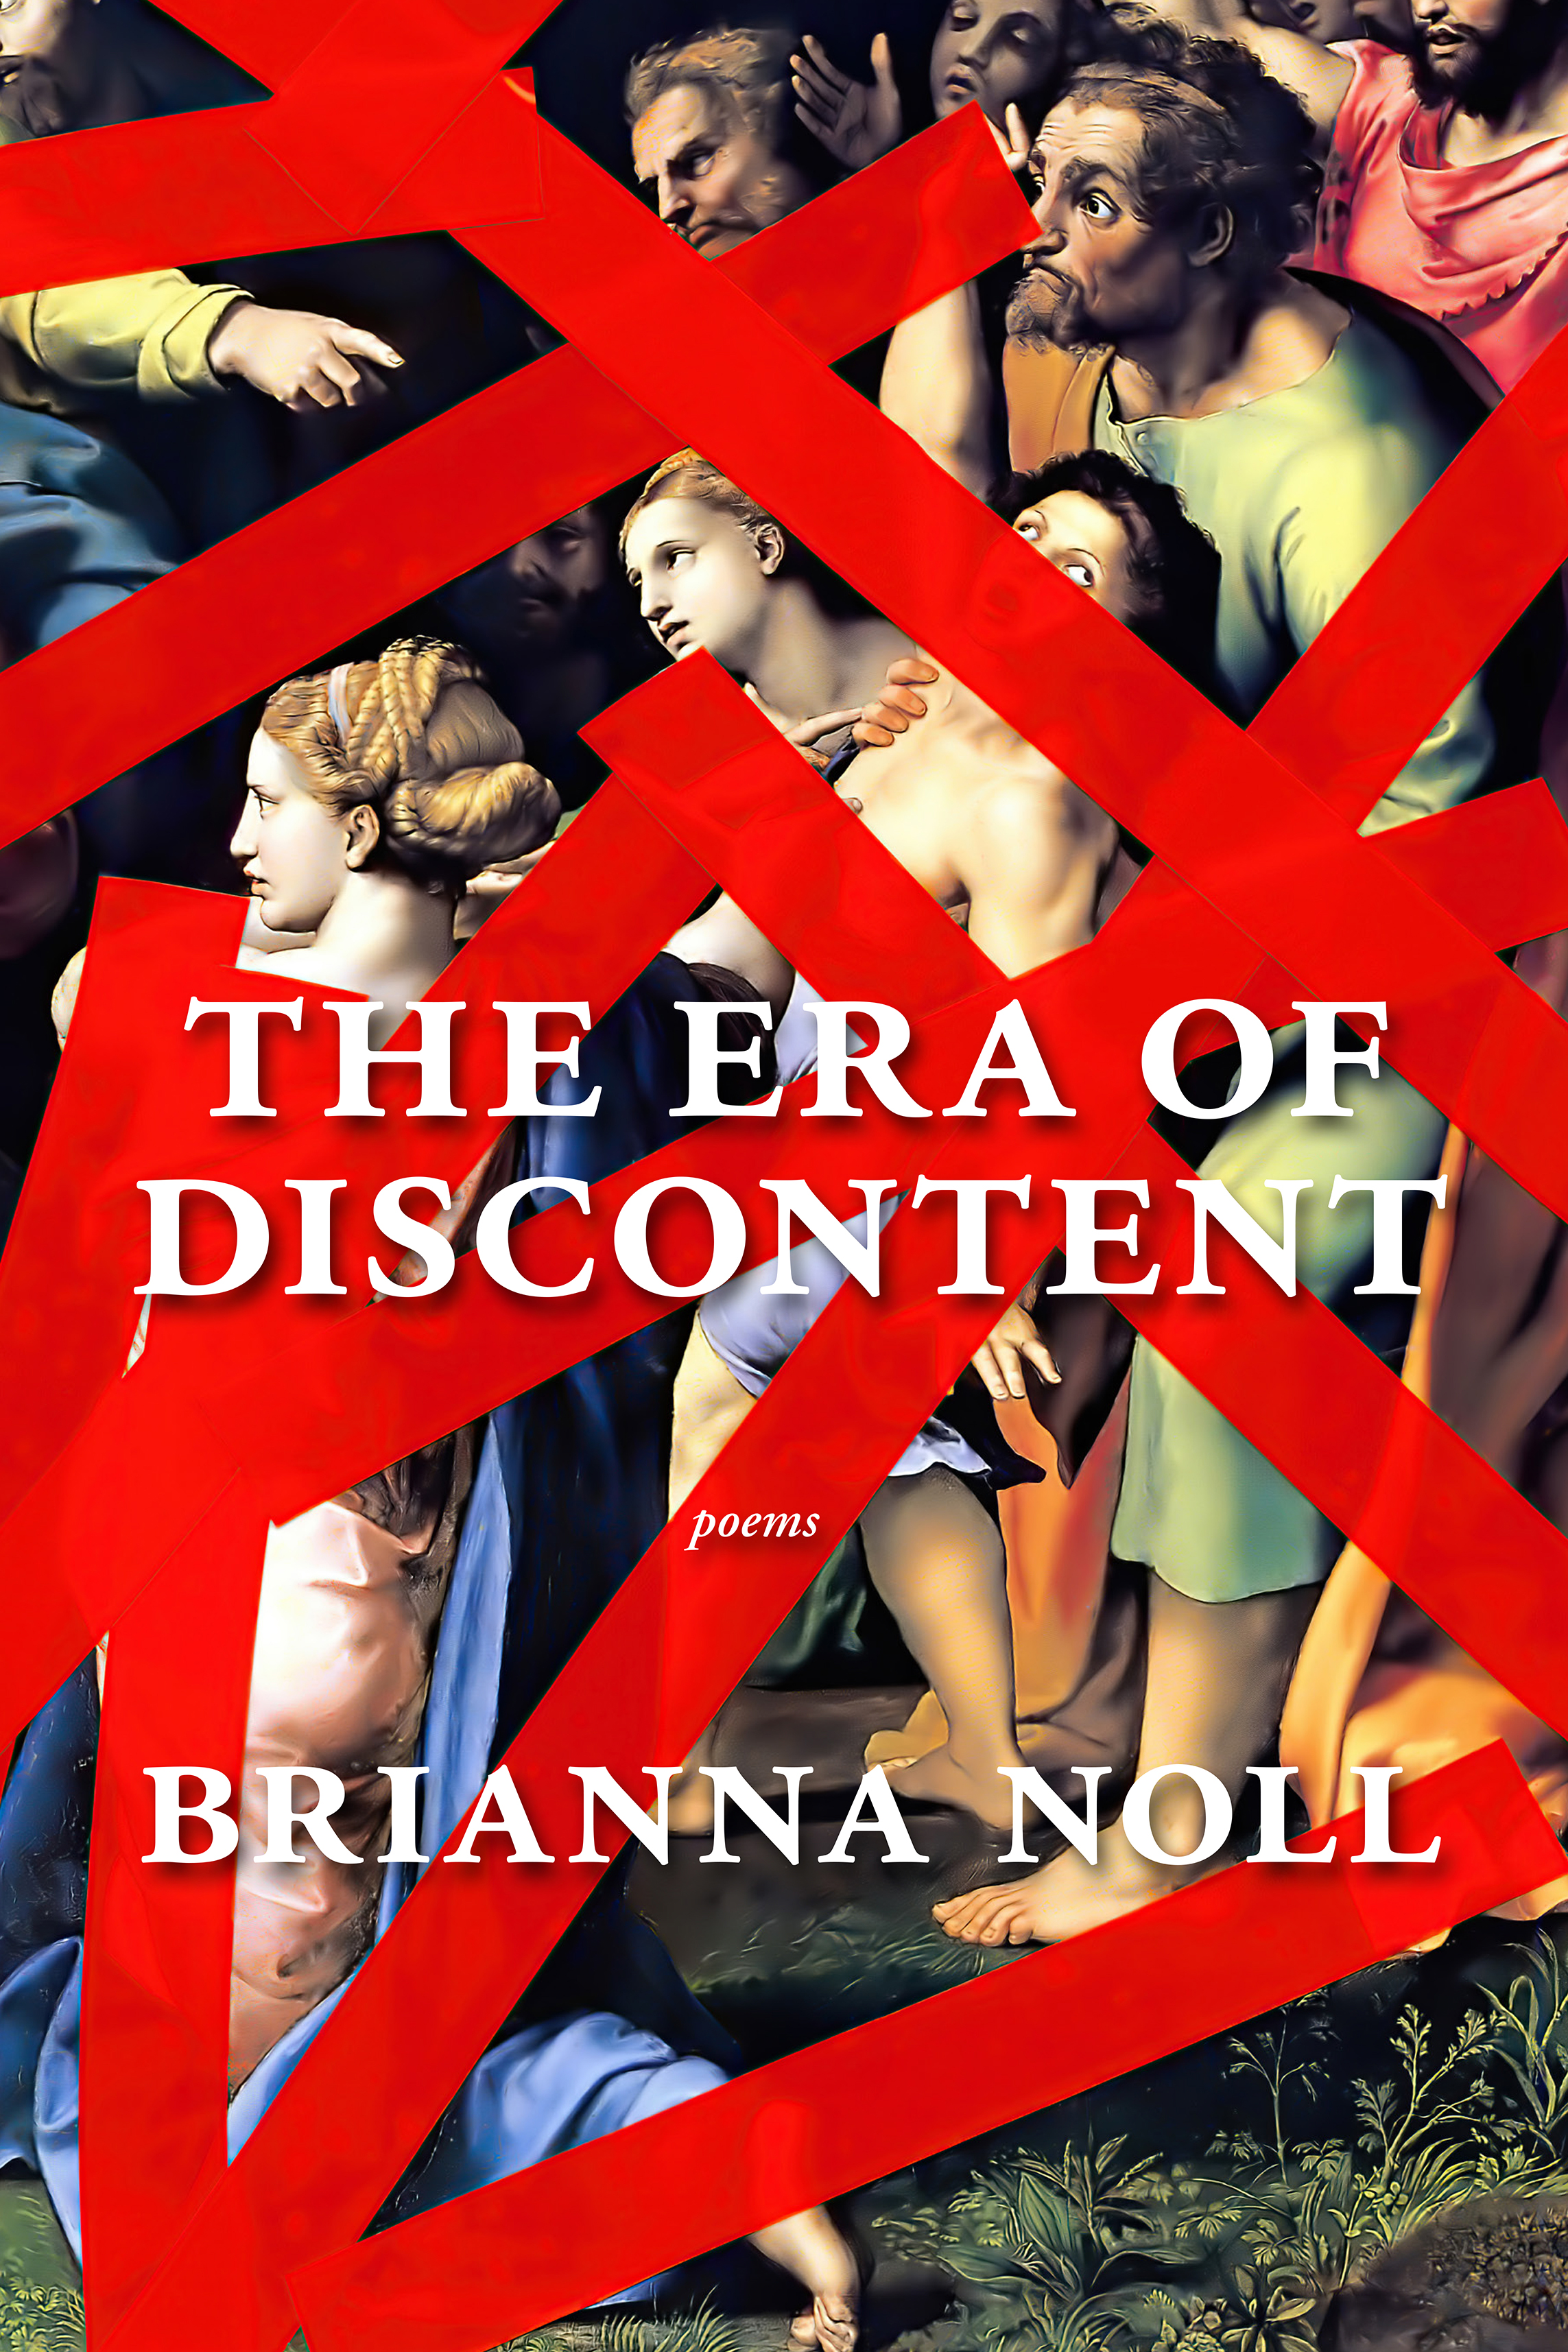 The Era of Discontent